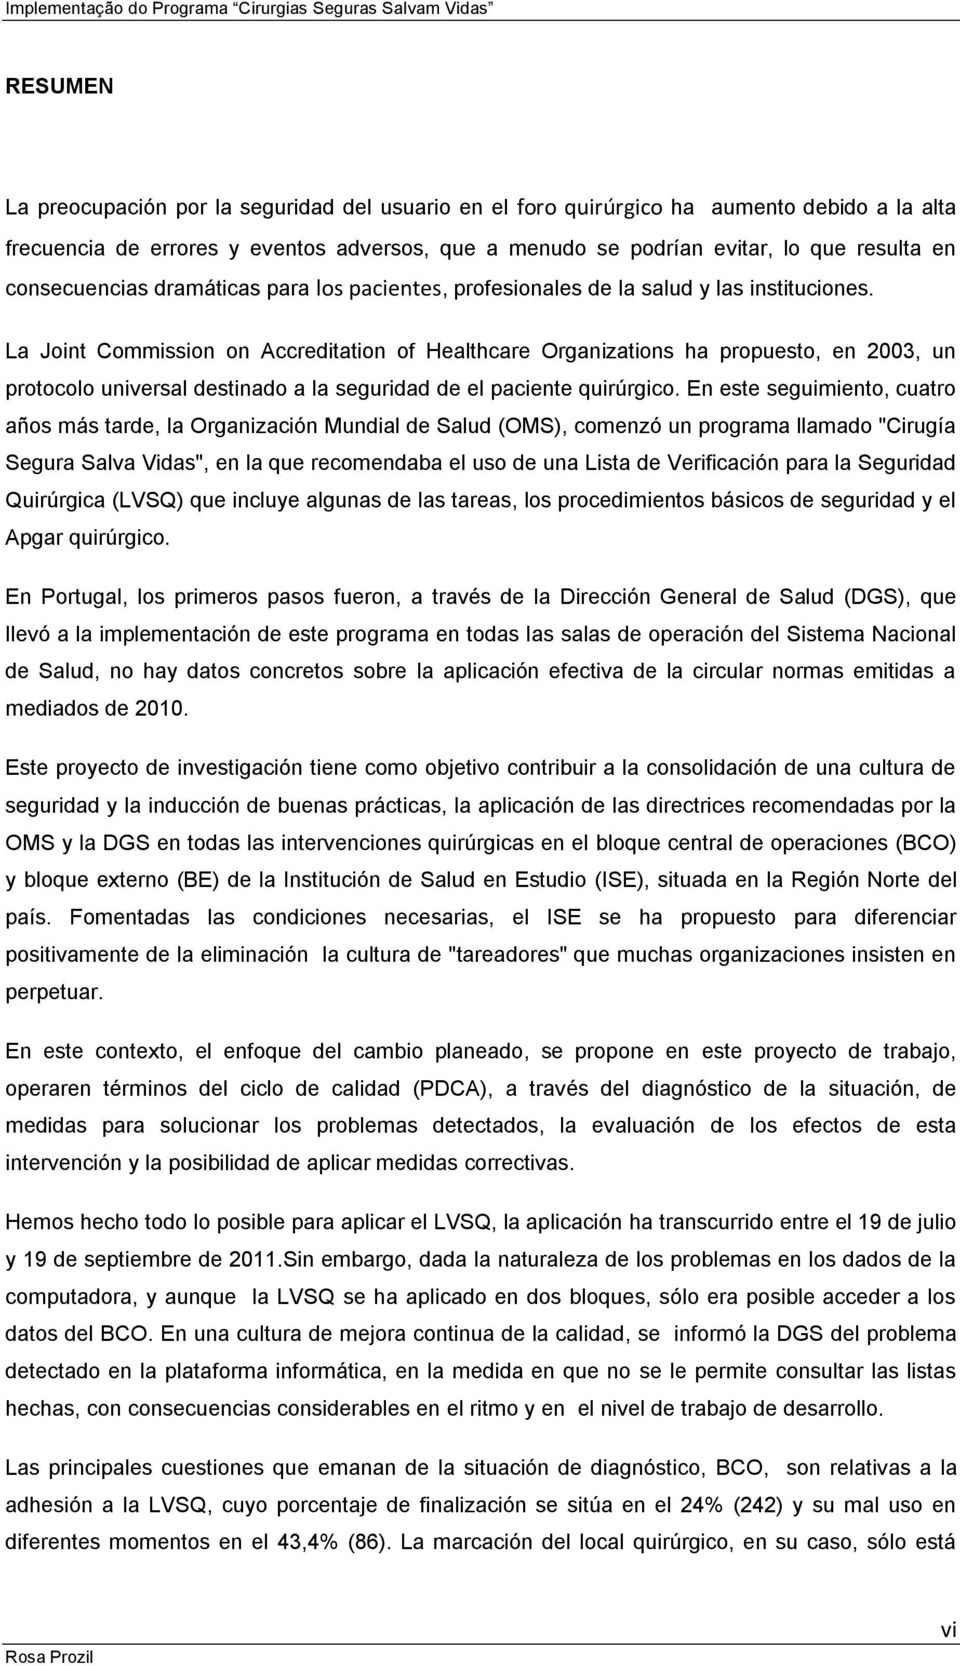 La Joint Commission on Accreditation of Healthcare Organizations ha propuesto, en 2003, un protocolo universal destinado a la seguridad de el paciente quirúrgico.